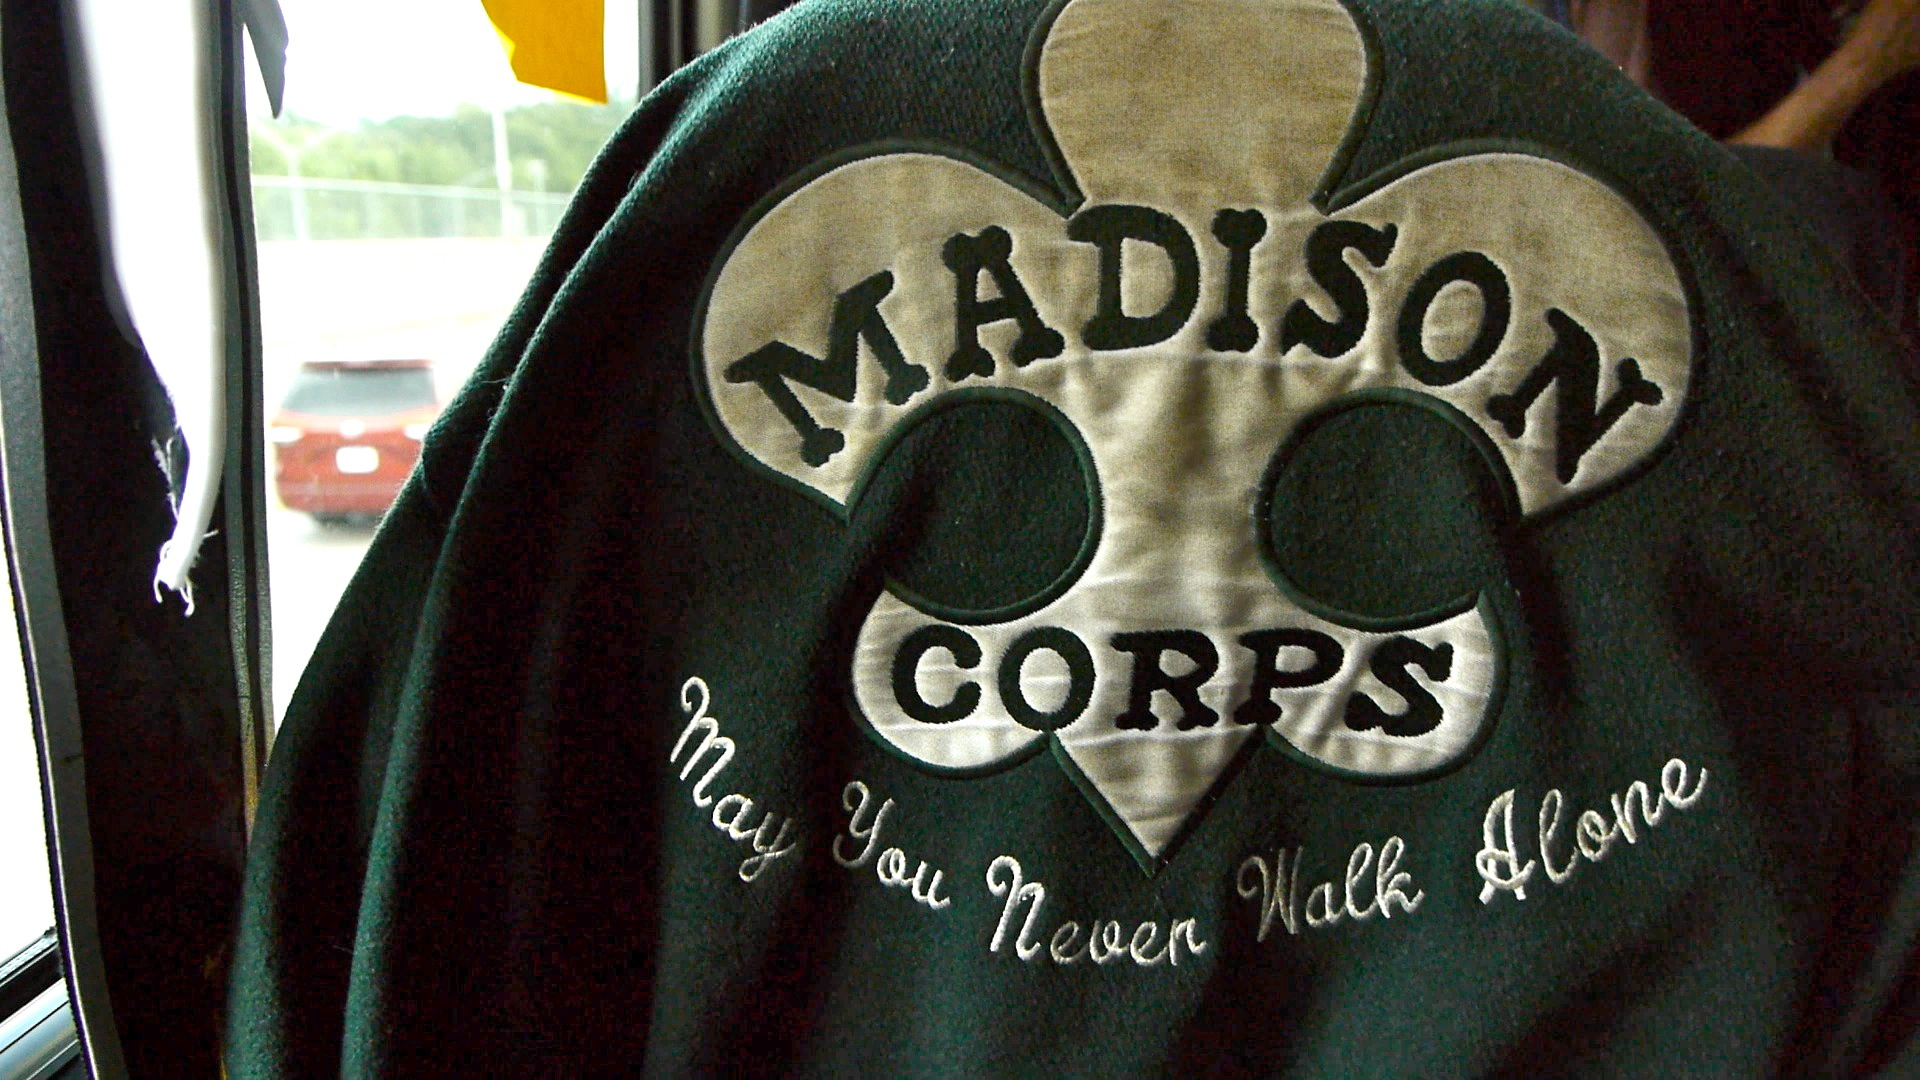 """Madison Corps jacked: """"You'll Never Walk Alone"""""""